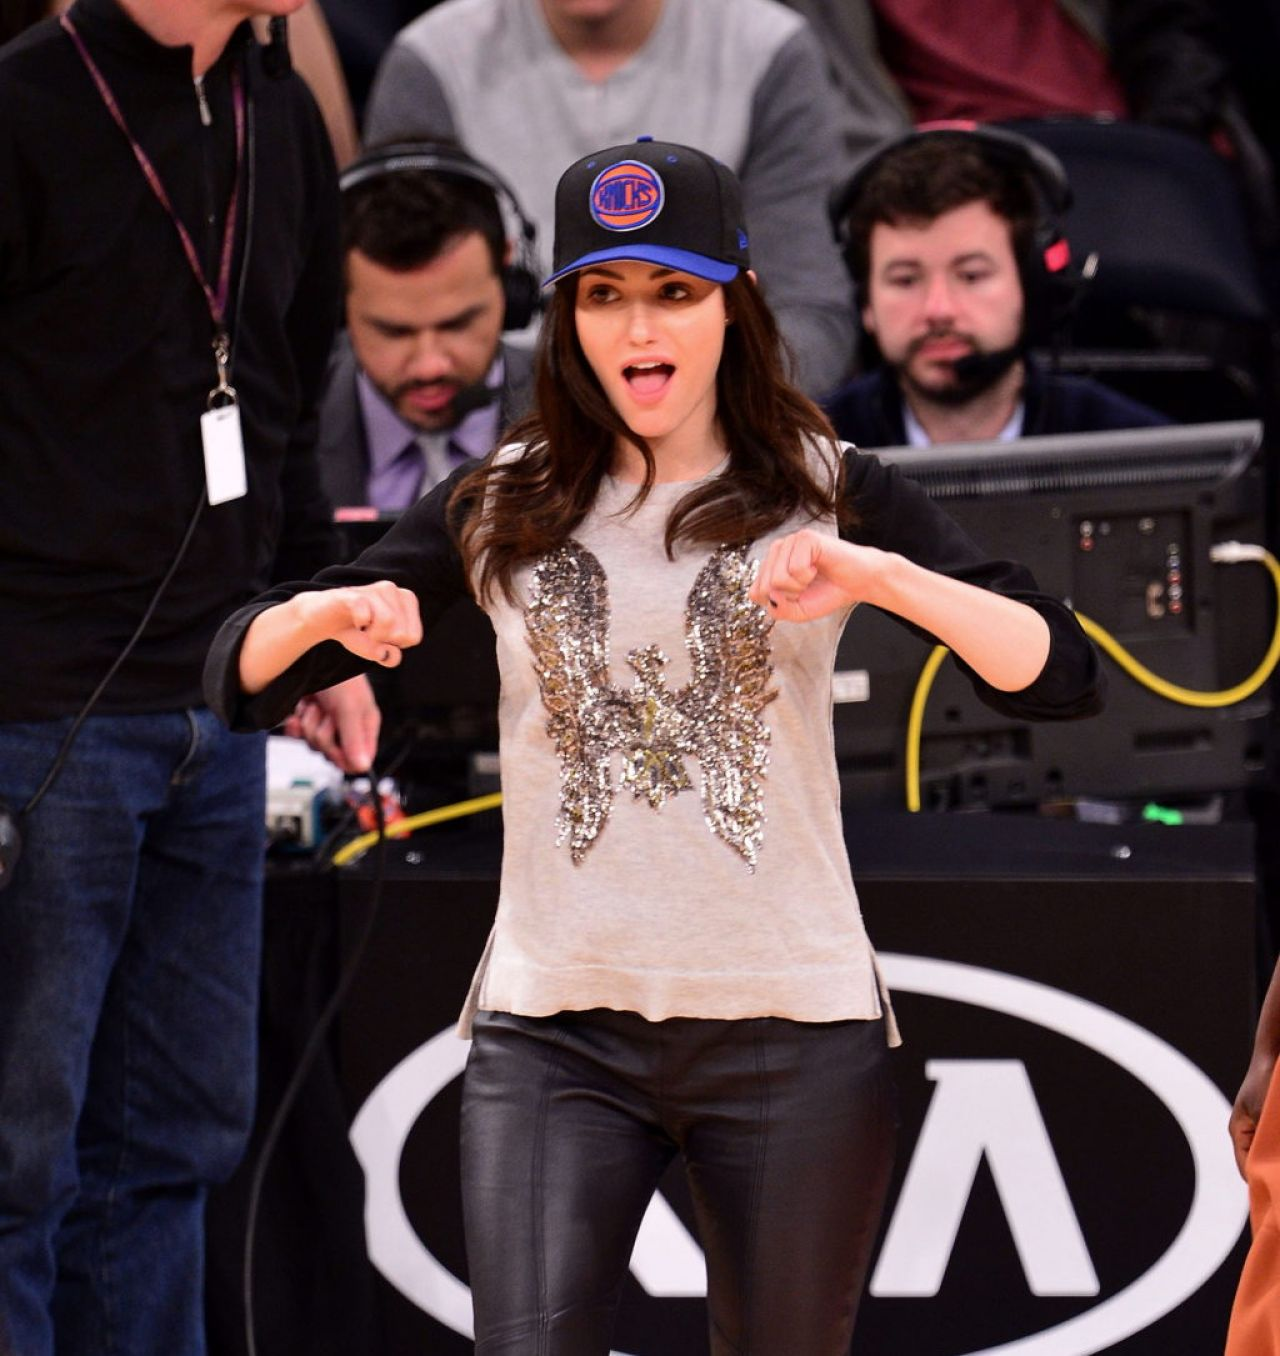 Emmy Rossum nad Mark Ruffalo at the Knicks game in New York City, March 2014